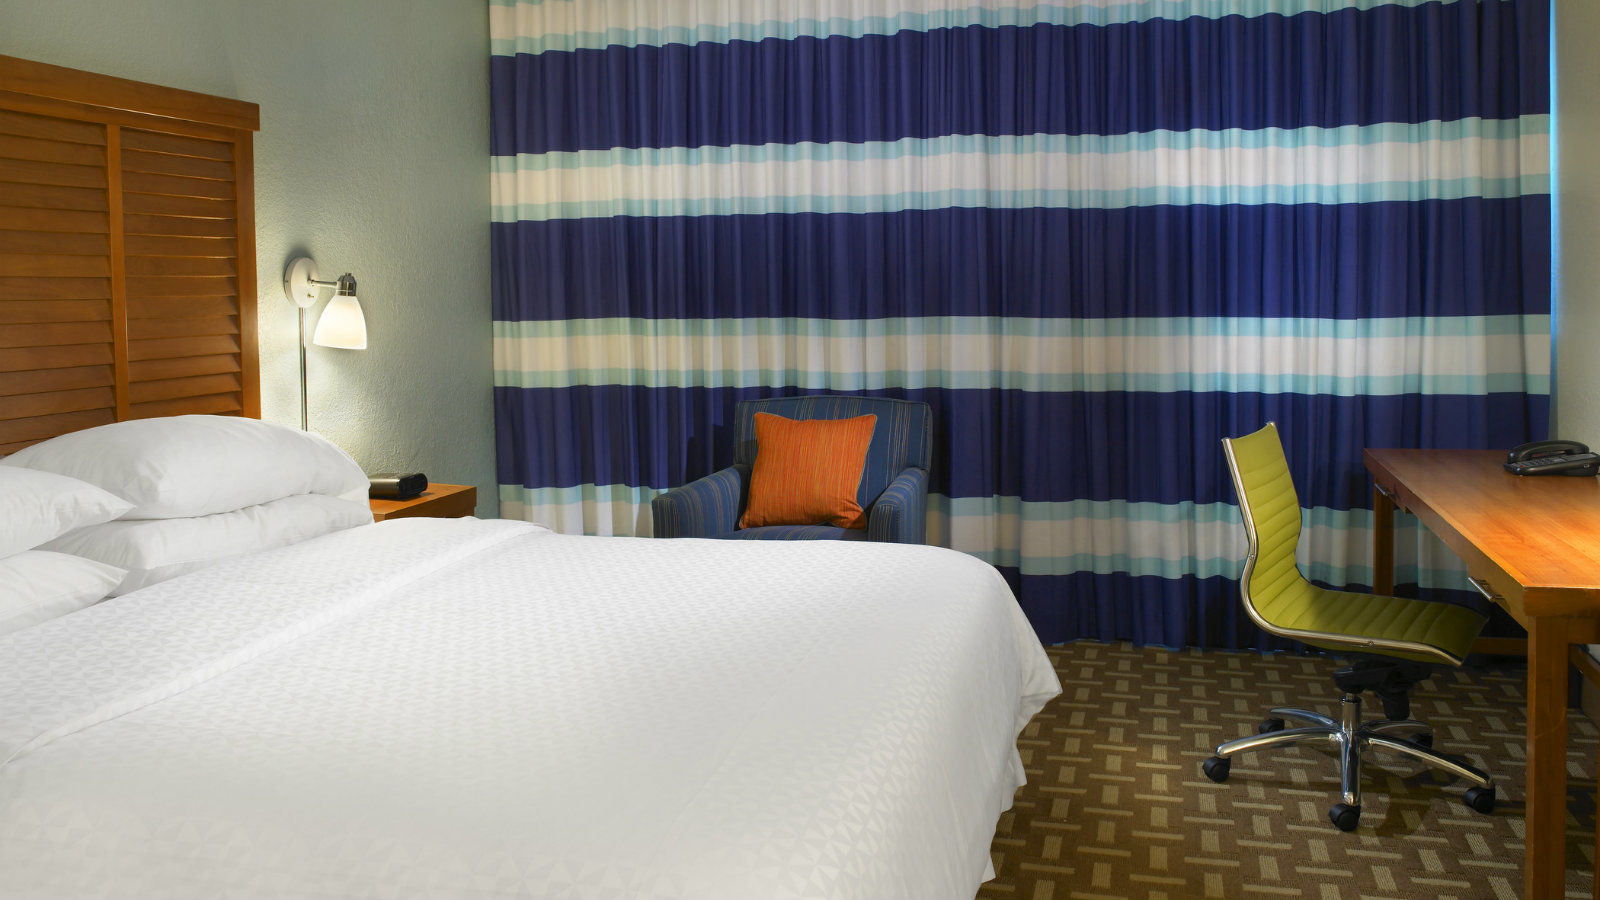 Miami Beach Accommodations - King Room